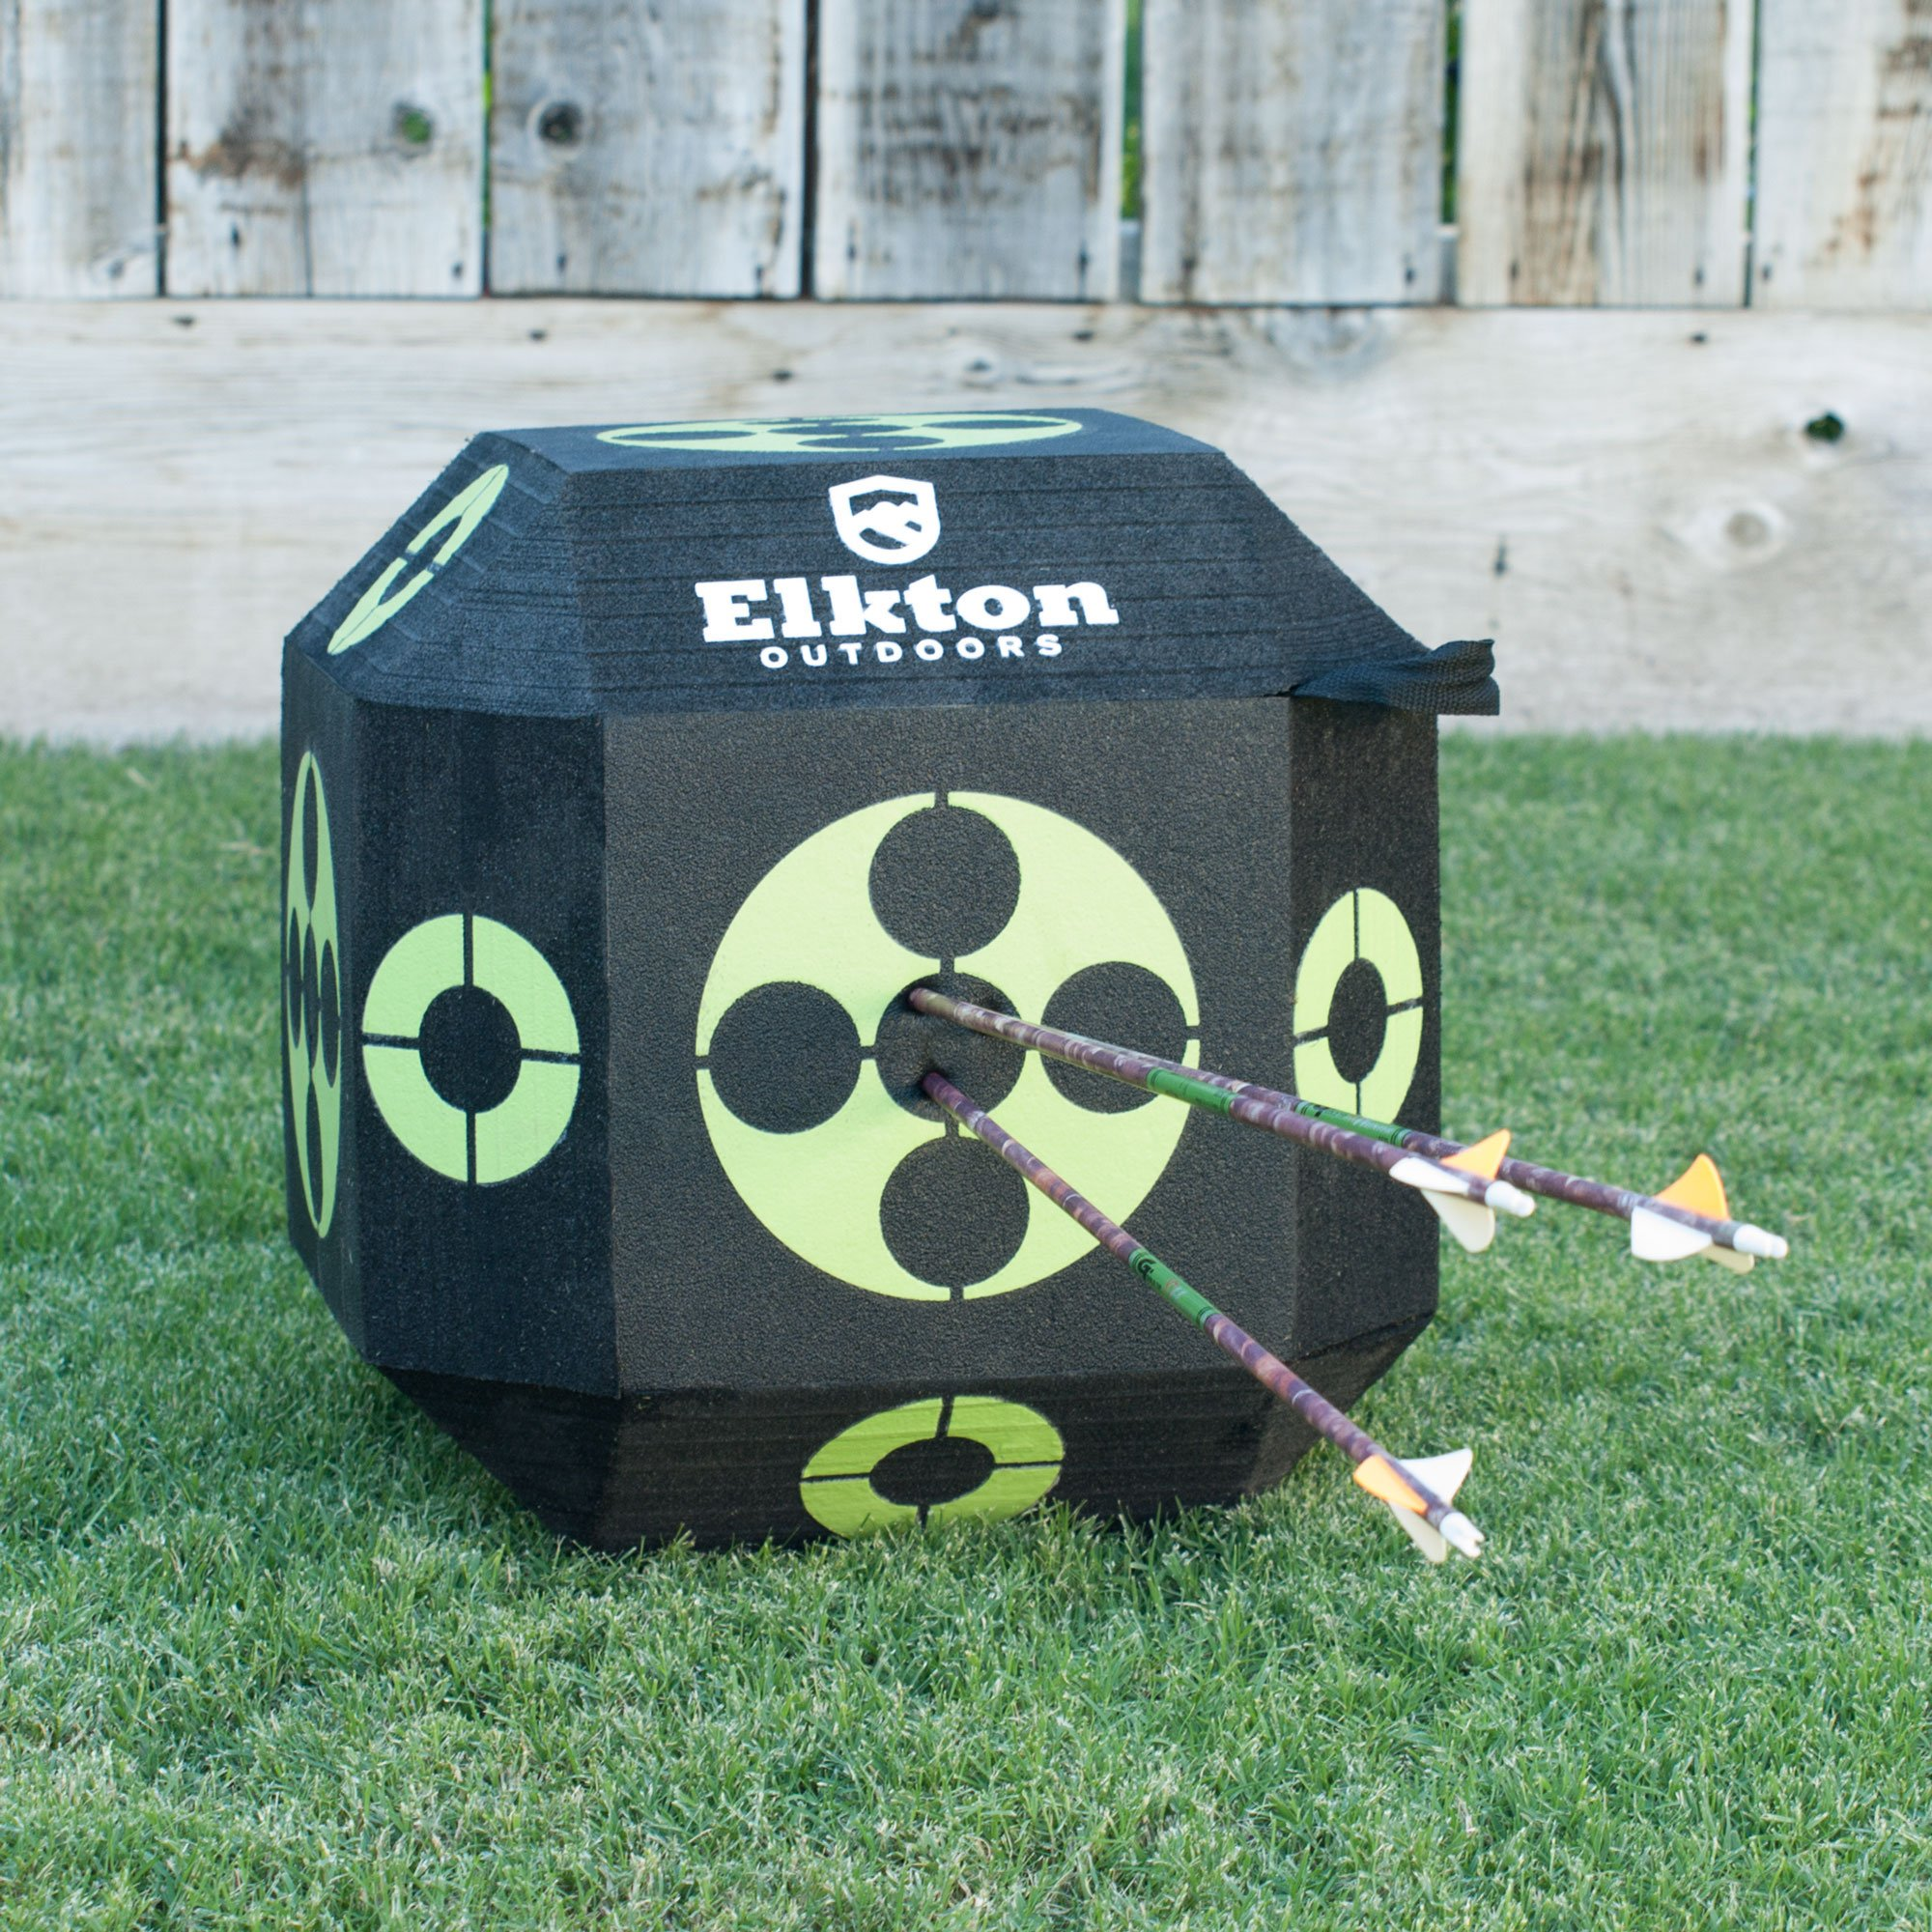 Elkton Outdoors 2017 Edition 18-Sided 3D Cube Reusable Archery Target Constructed With Arrow Puller & Rapid Self Healing XPE Foam for all Arrow Types by Elkton Outdoors (Image #4)